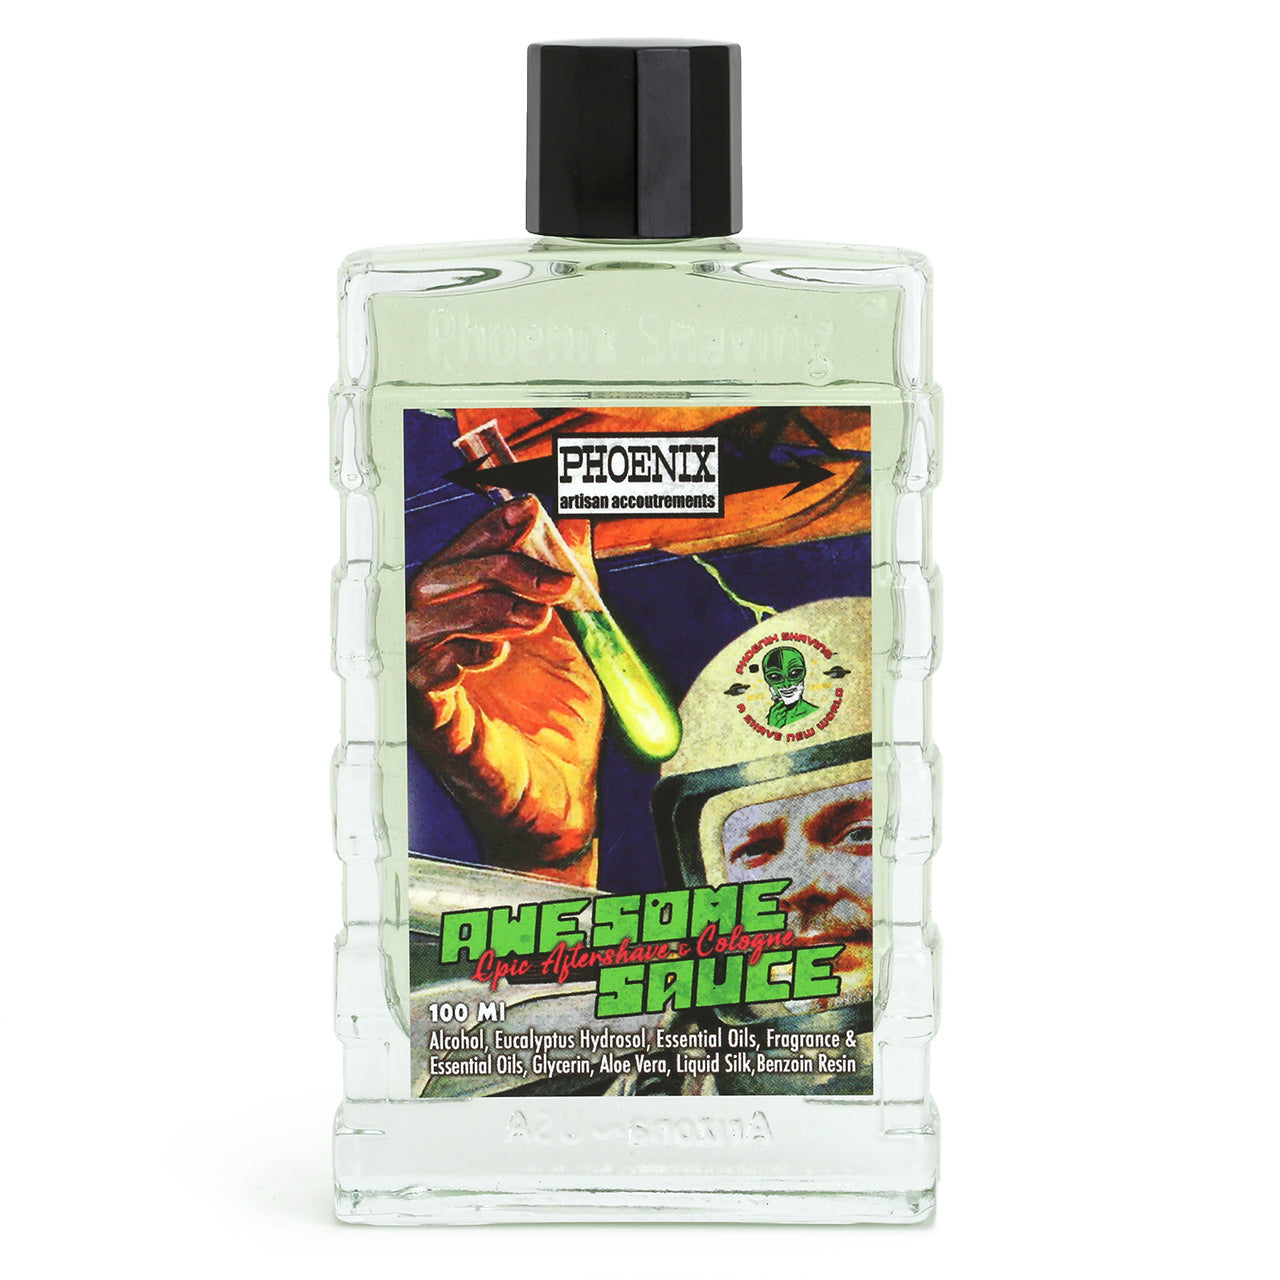 Phoenix Shaving Aftershave, Awesome Sauce, bottle